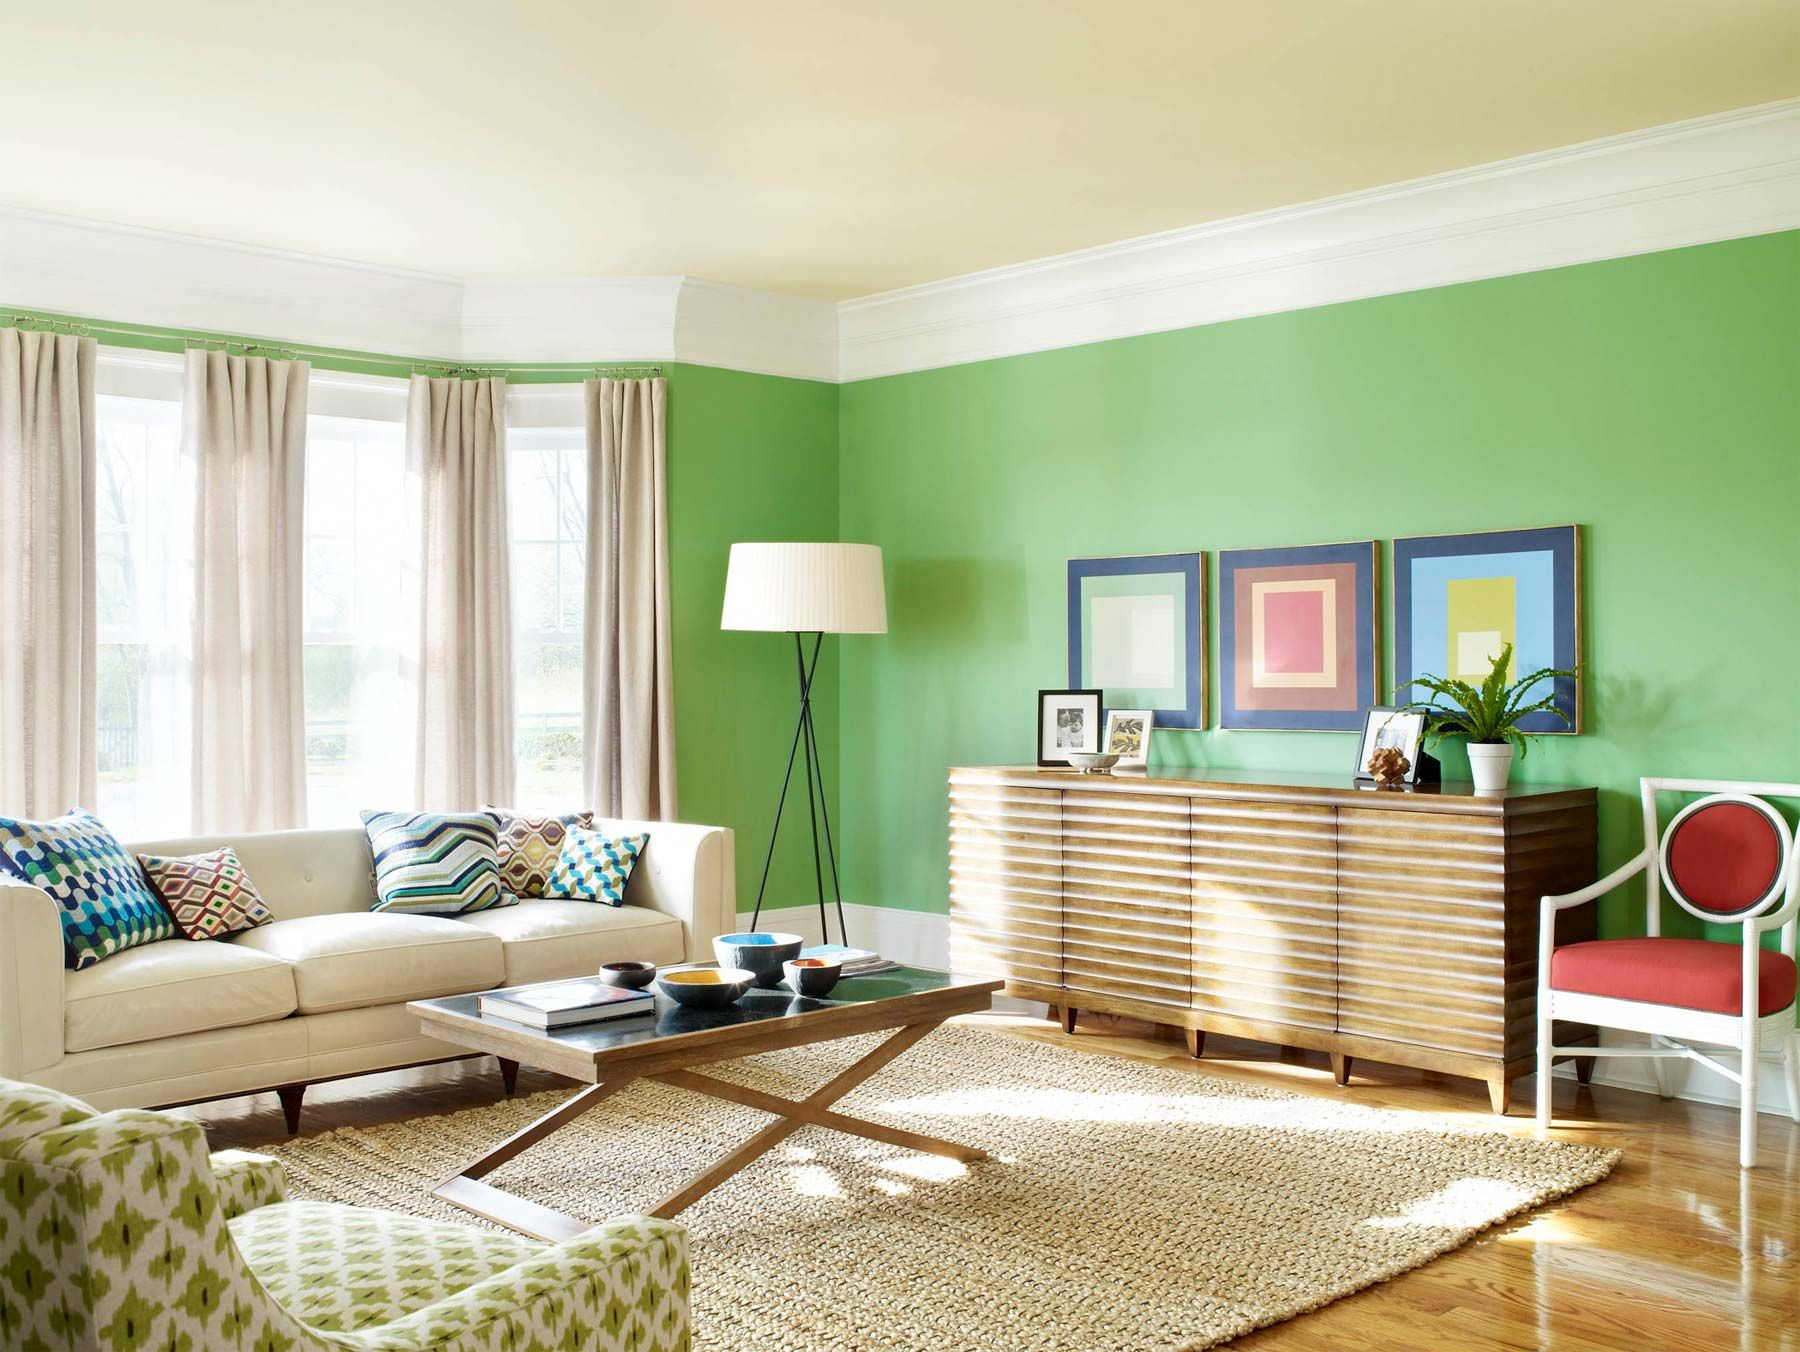 Green room paint ideas - Interior Design